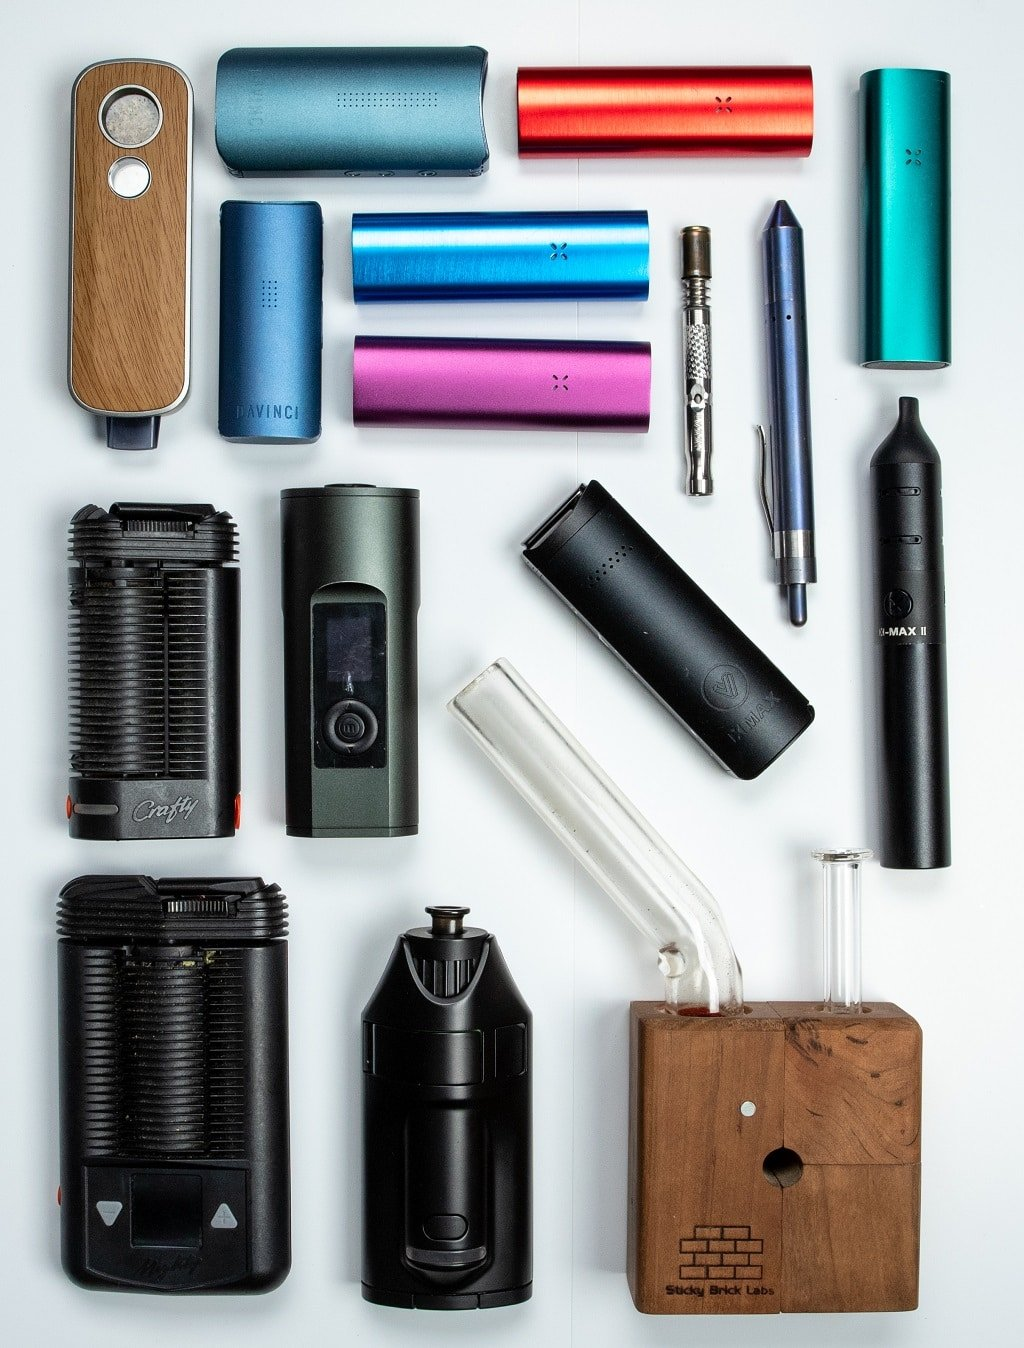 The BEST Portable Vaporizers for 2019 | Dry Herb | Vaporizer